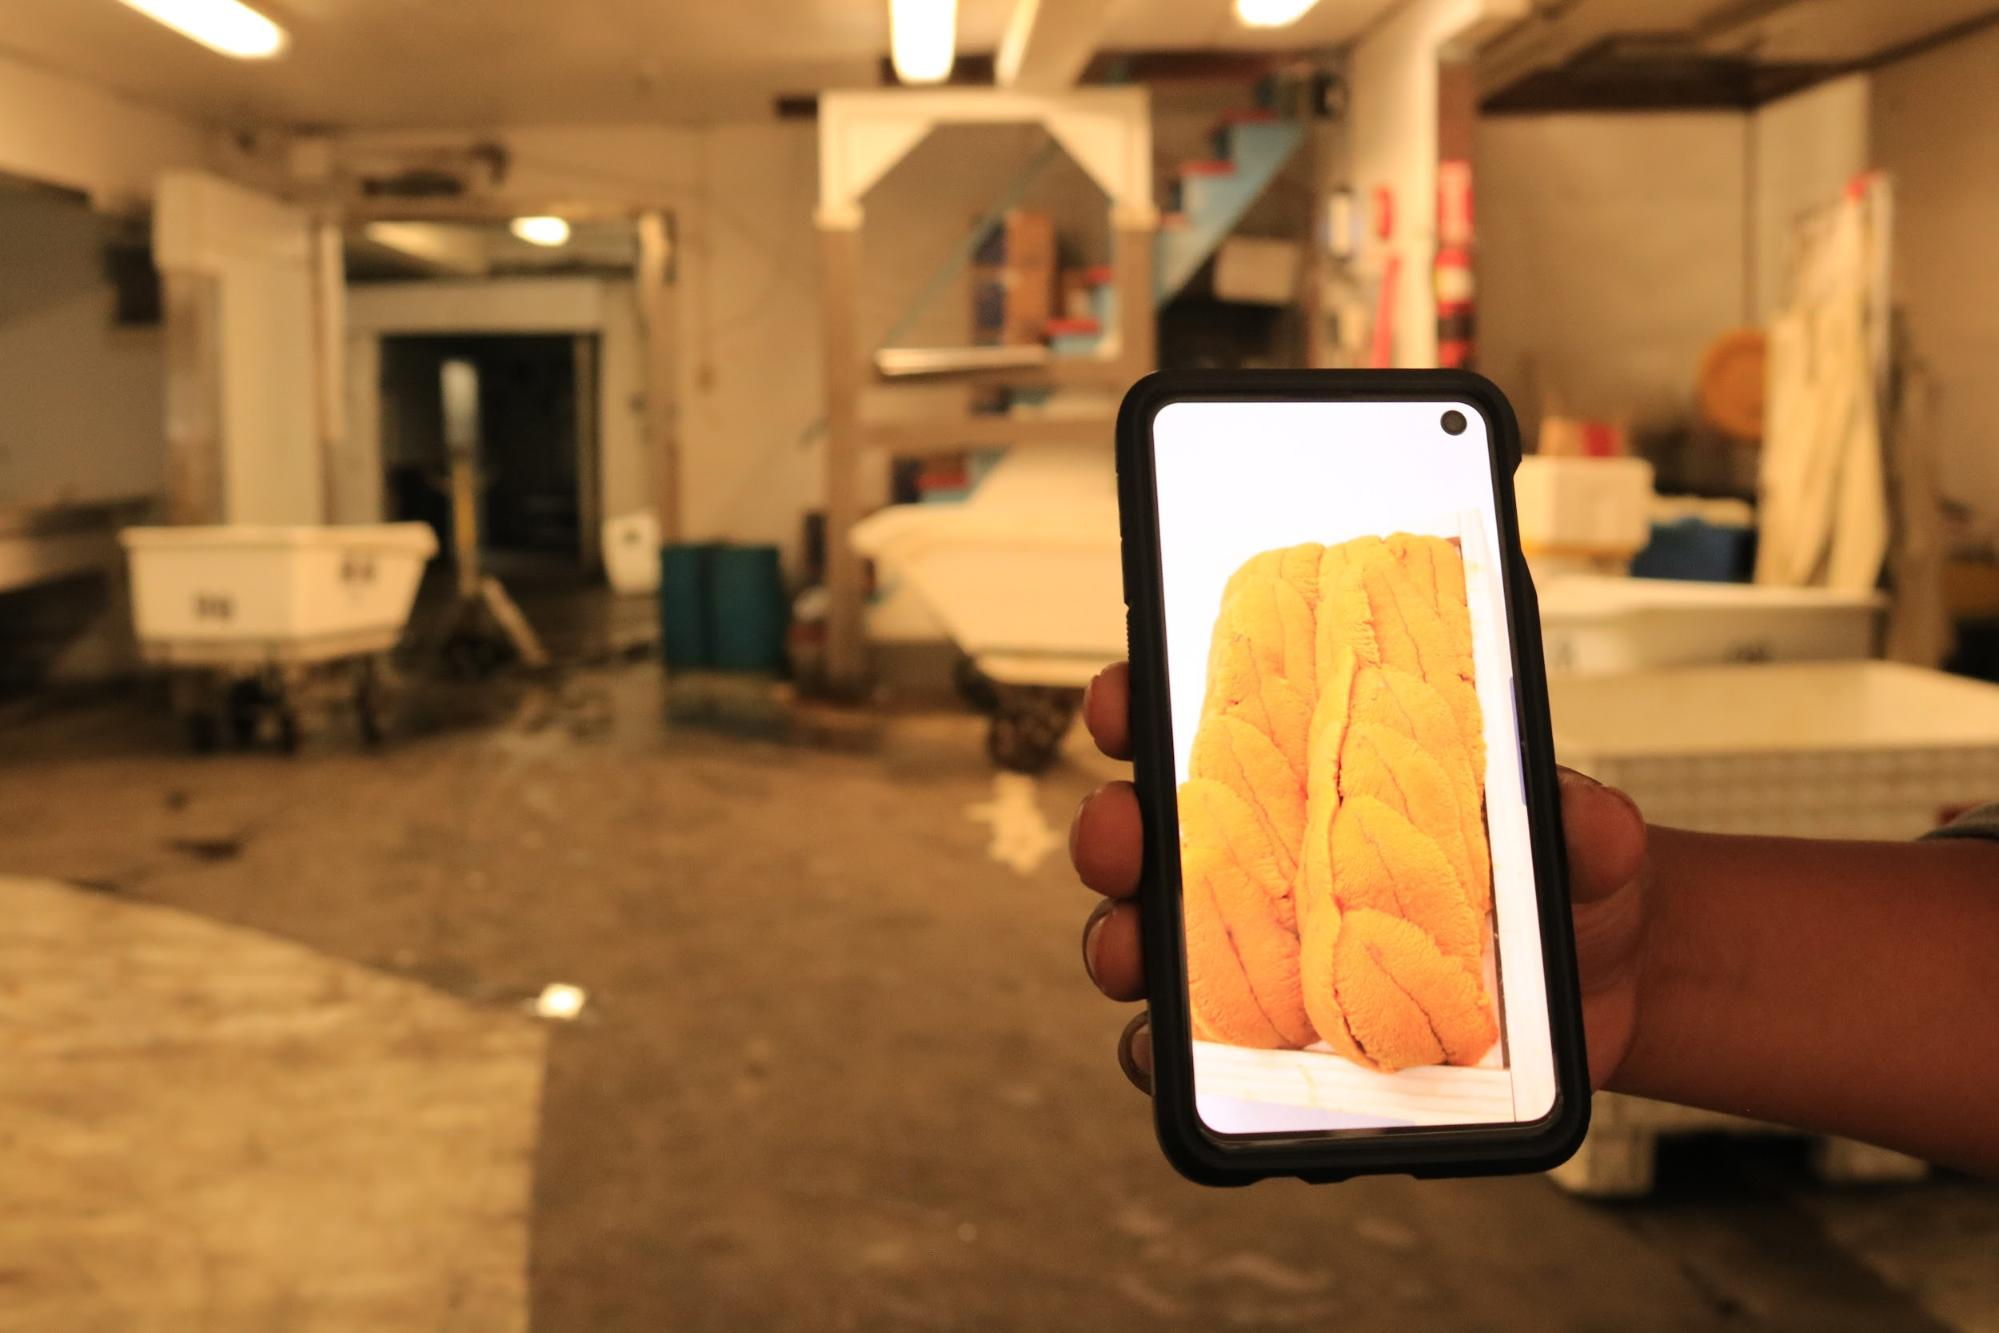 A man's hand holds up a smartphone on which an orange squishy tubular piece of sushi is displayed. In the background, a room with large plastic tubs and fluorescent lighting